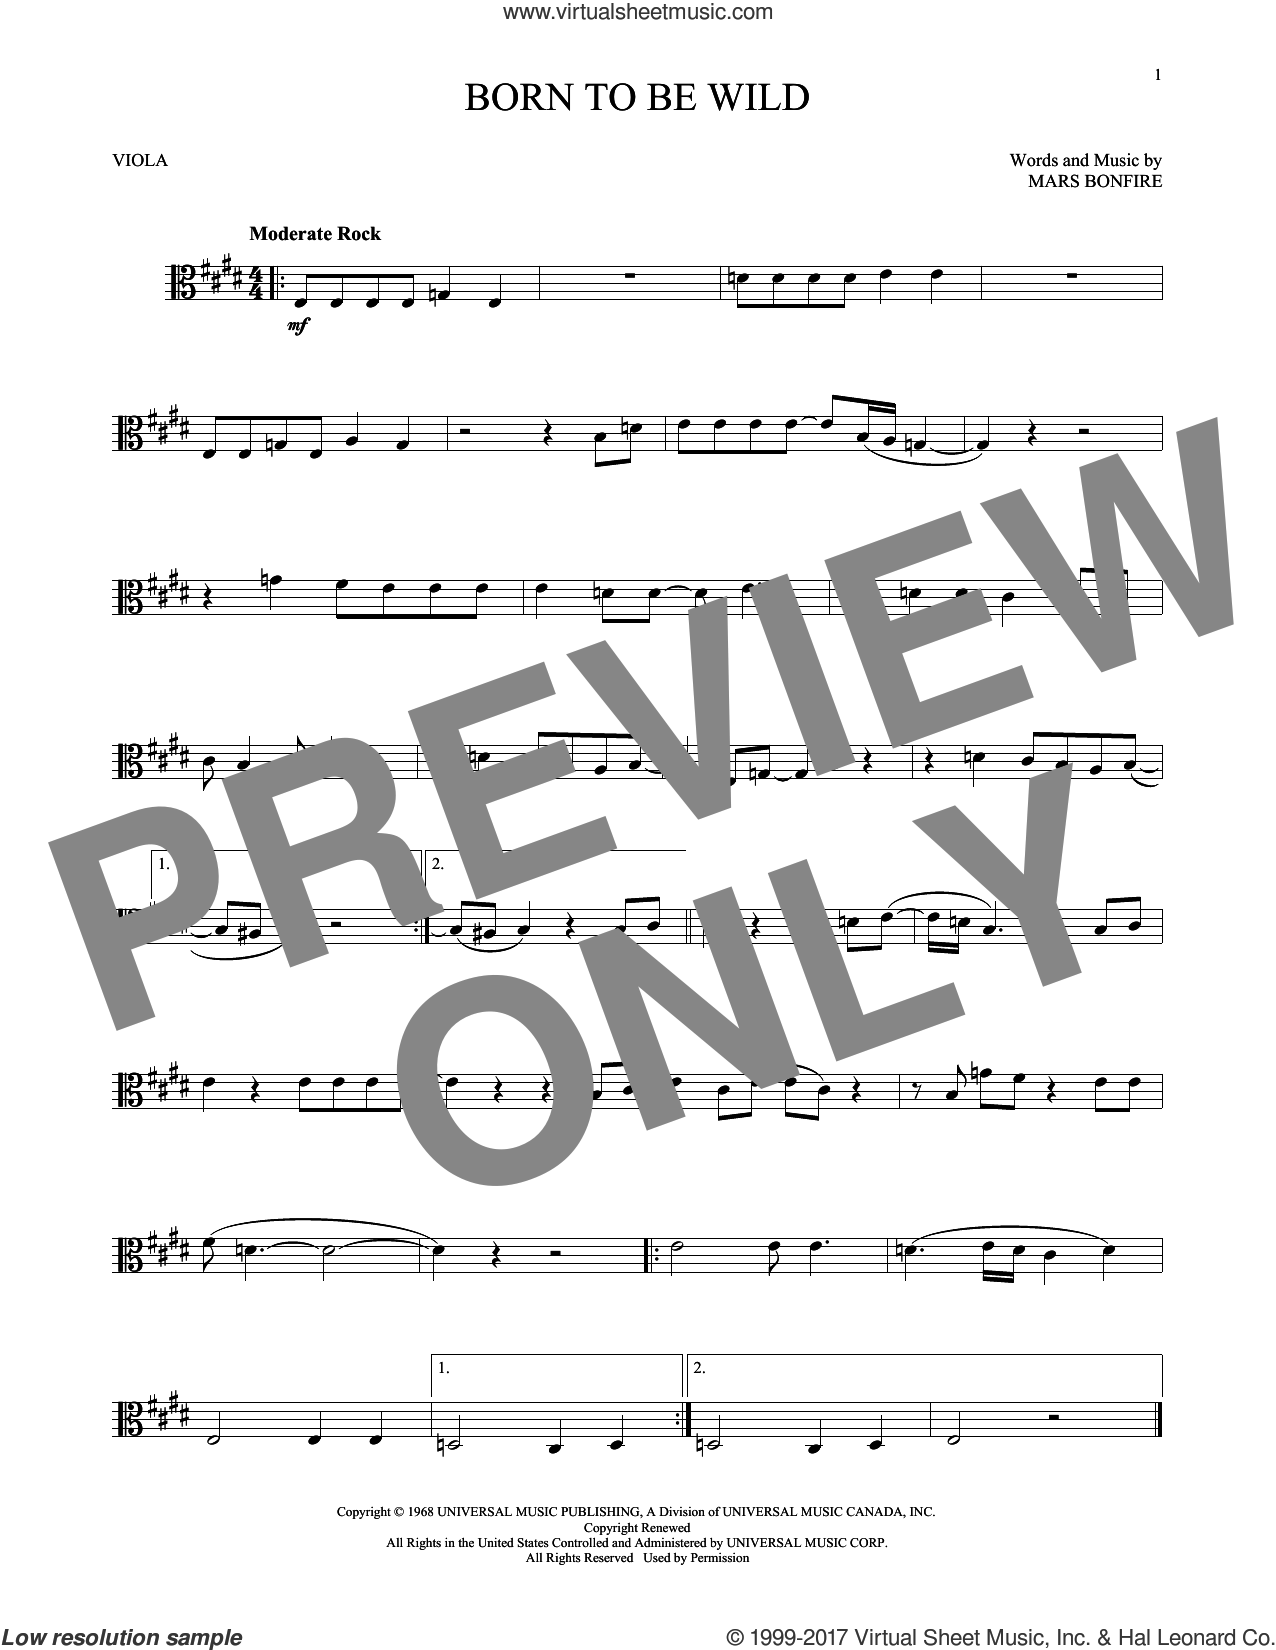 Born To Be Wild sheet music for viola solo by Steppenwolf and Mars Bonfire, intermediate